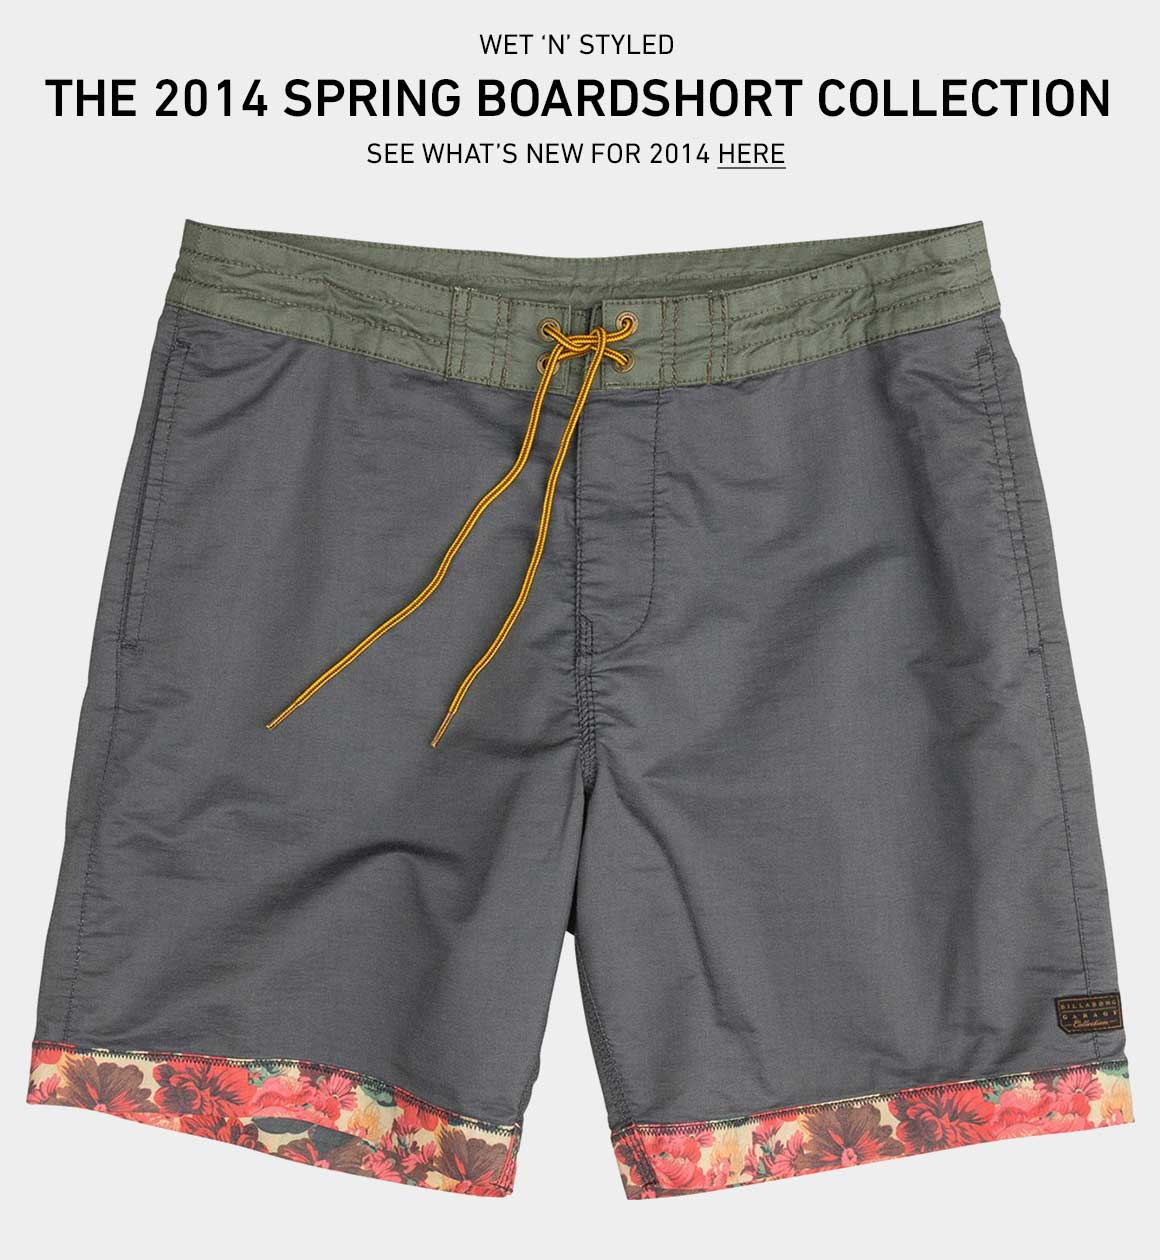 Get Wet 'n' Styled: Shop New Boardshorts